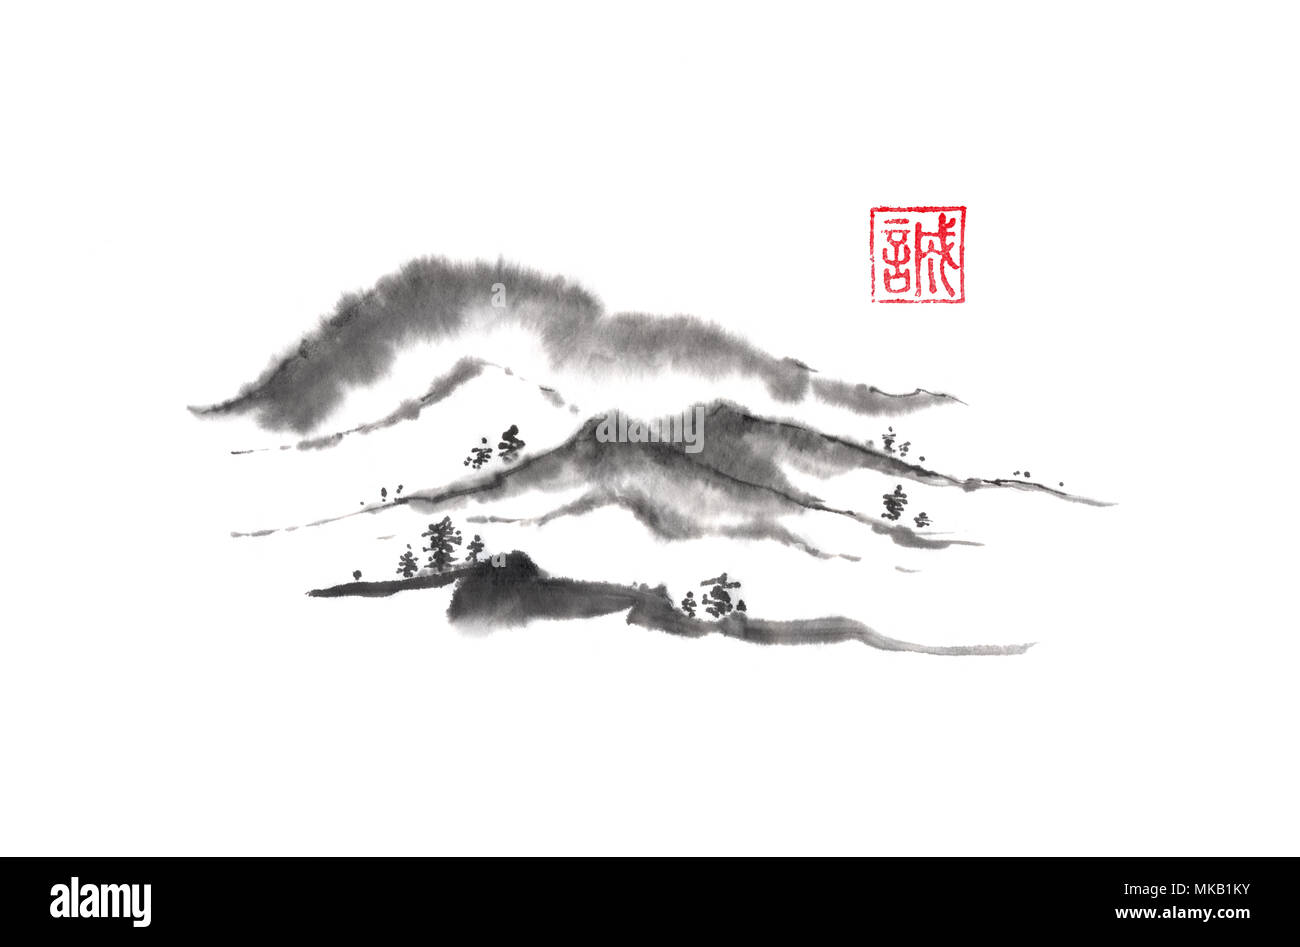 Japanese style sumi-e distant hills ink painting. Hieroglyph featured means sincerity. Great for greeting cards or texture design. - Stock Image